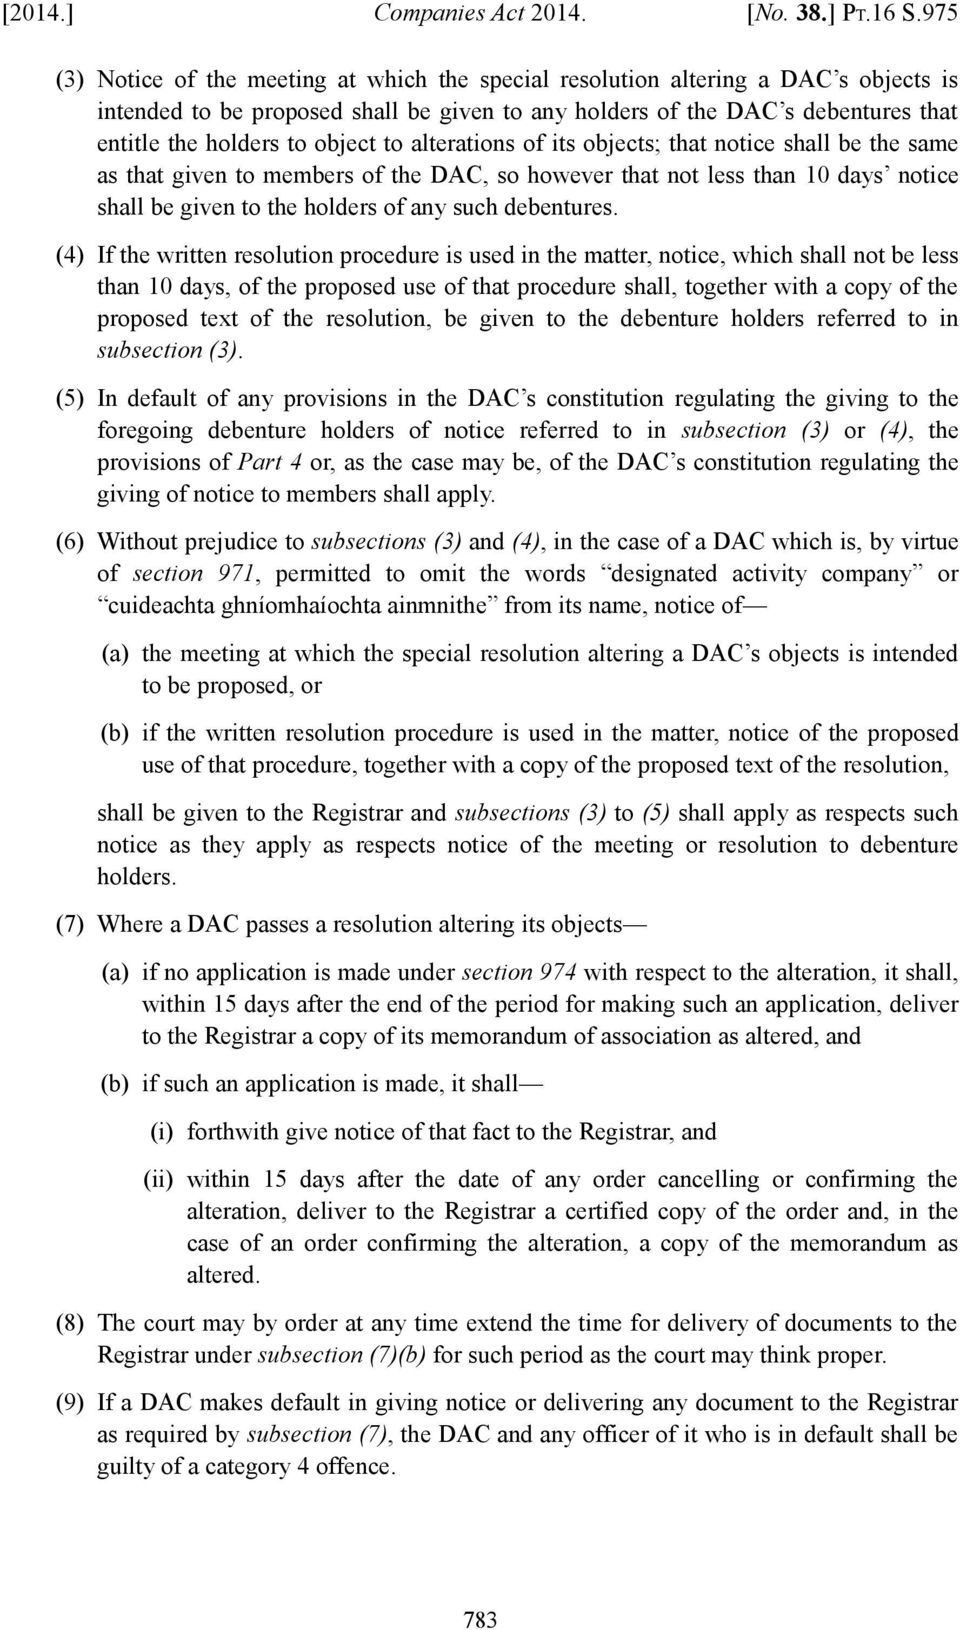 object to alterations of its objects; that notice shall be the same as that given to members of the DAC, so however that not less than 10 days notice shall be given to the holders of any such